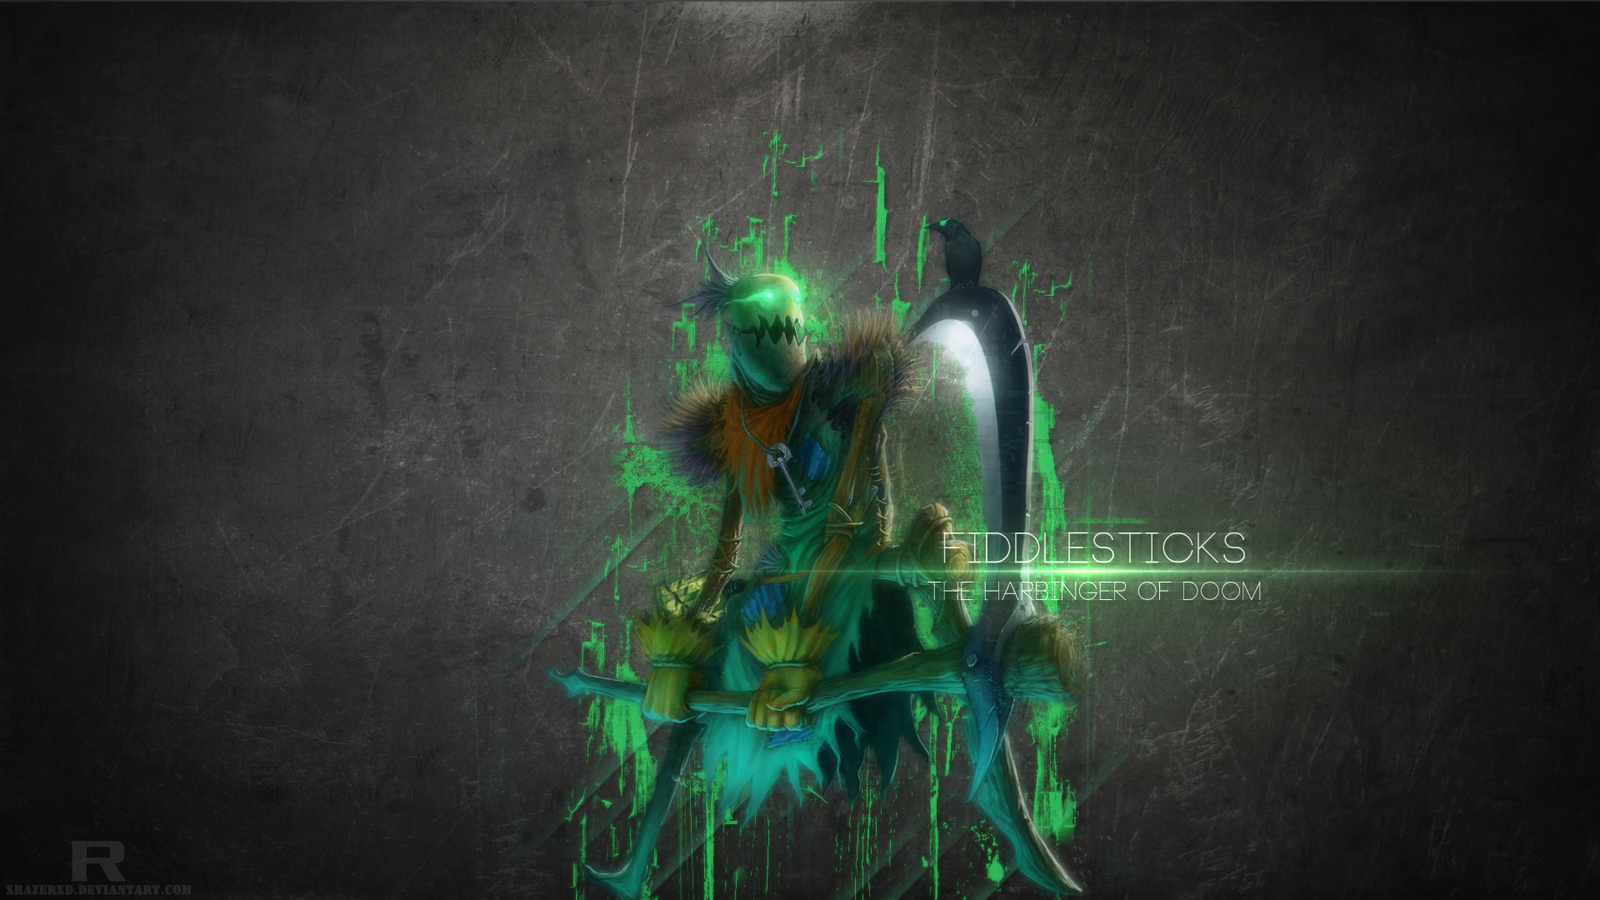 League of Legends - Fiddlesticks Wallpaper by xRazerxD on ...